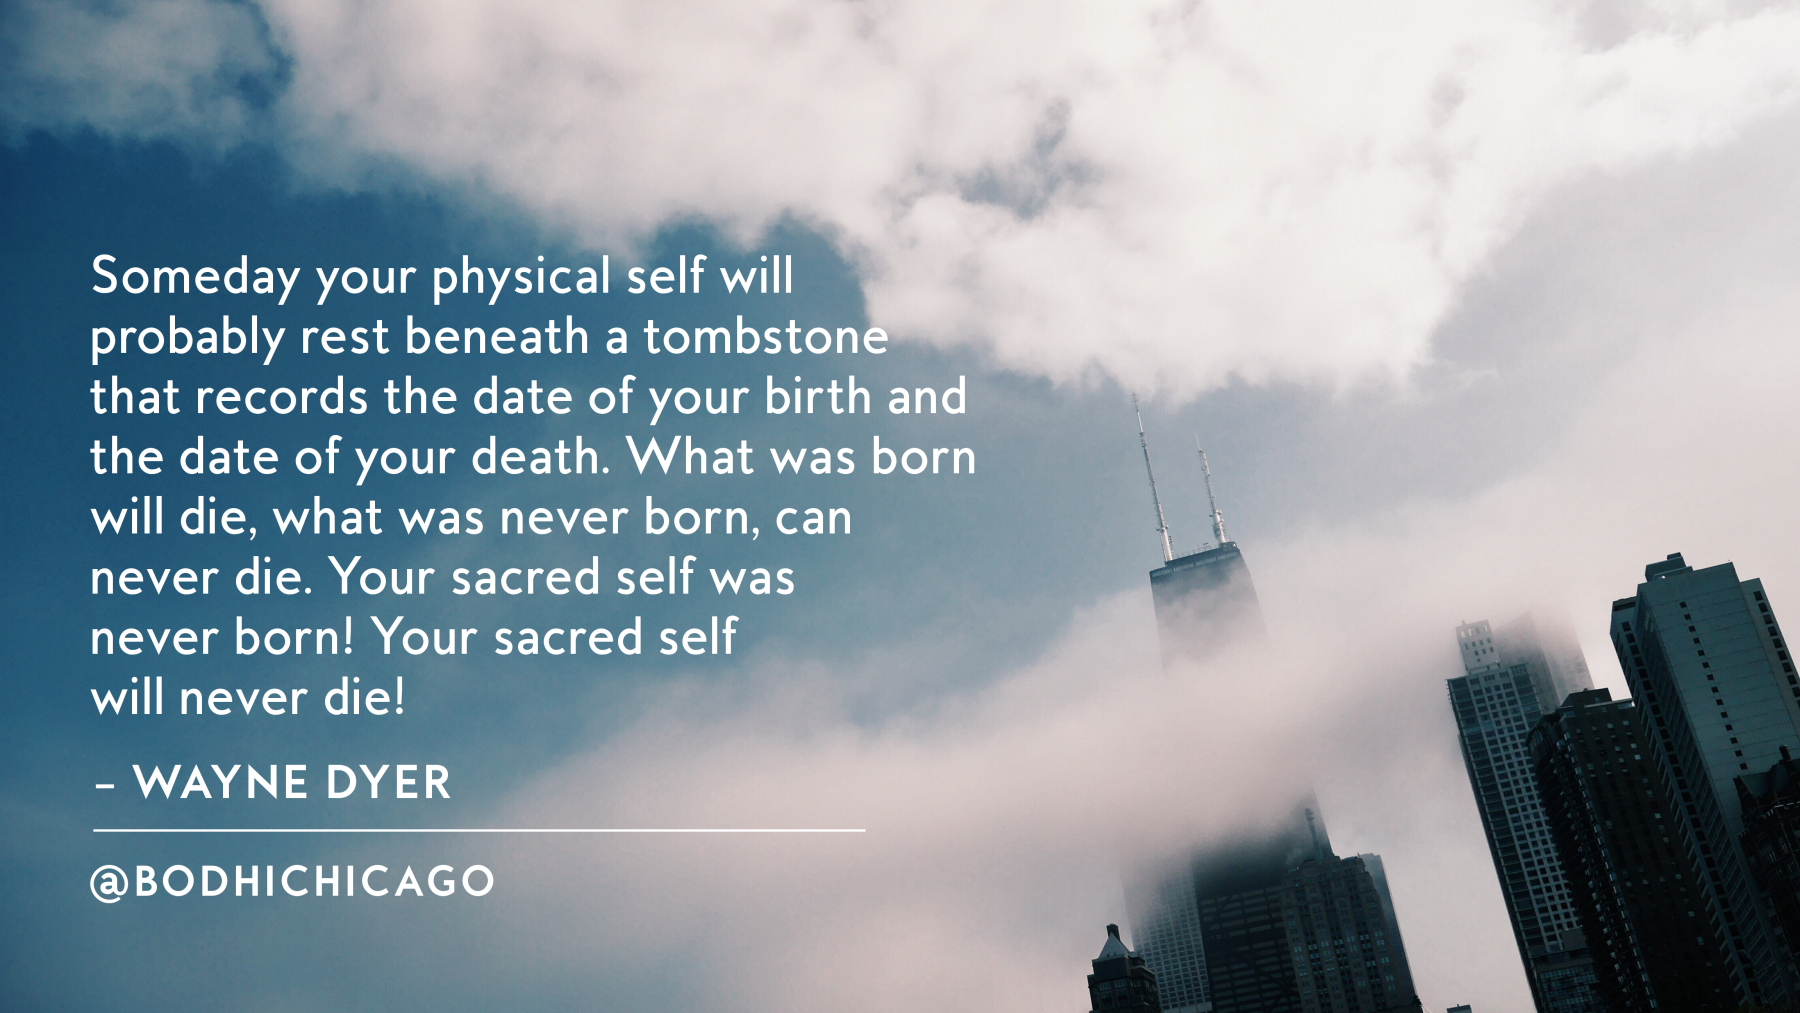 Wednesday Wisdom Quote: Wayne Dyer On The Sacred Self - Bodhi